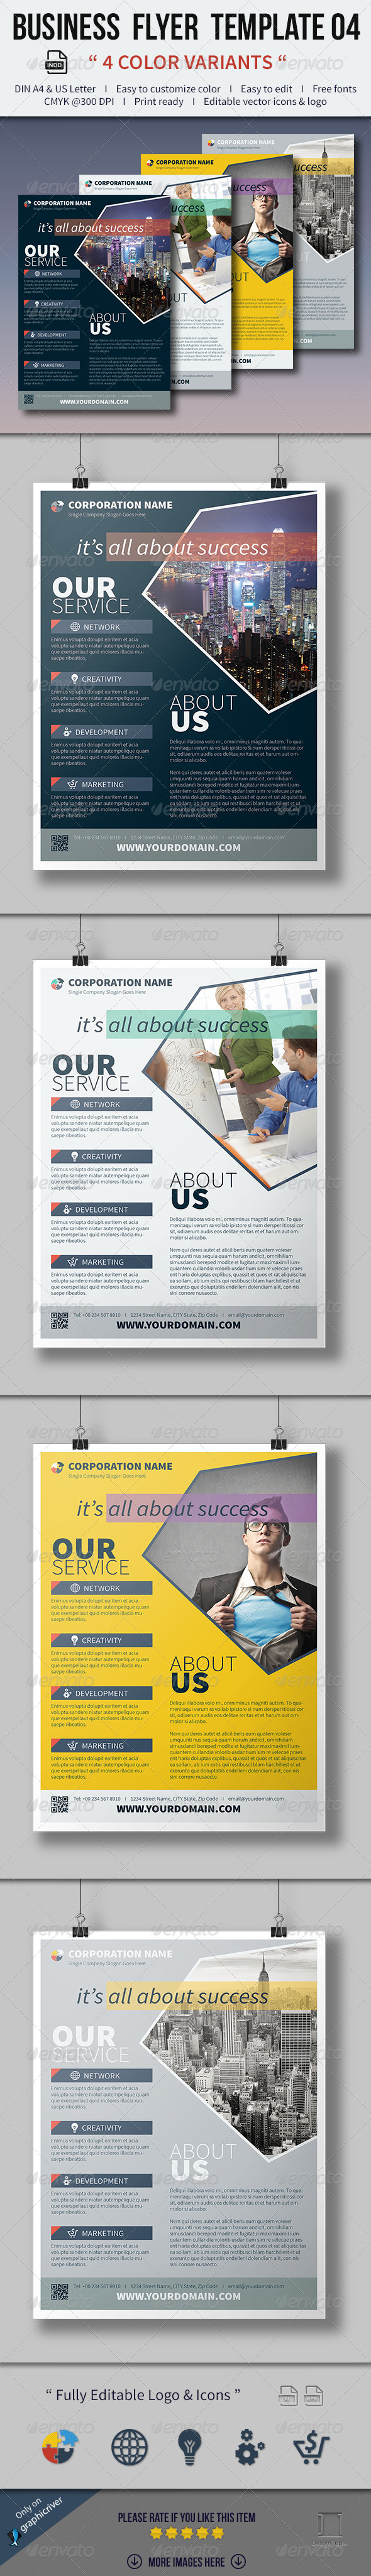 GraphicRiver Business Flyer Template 04 8134989